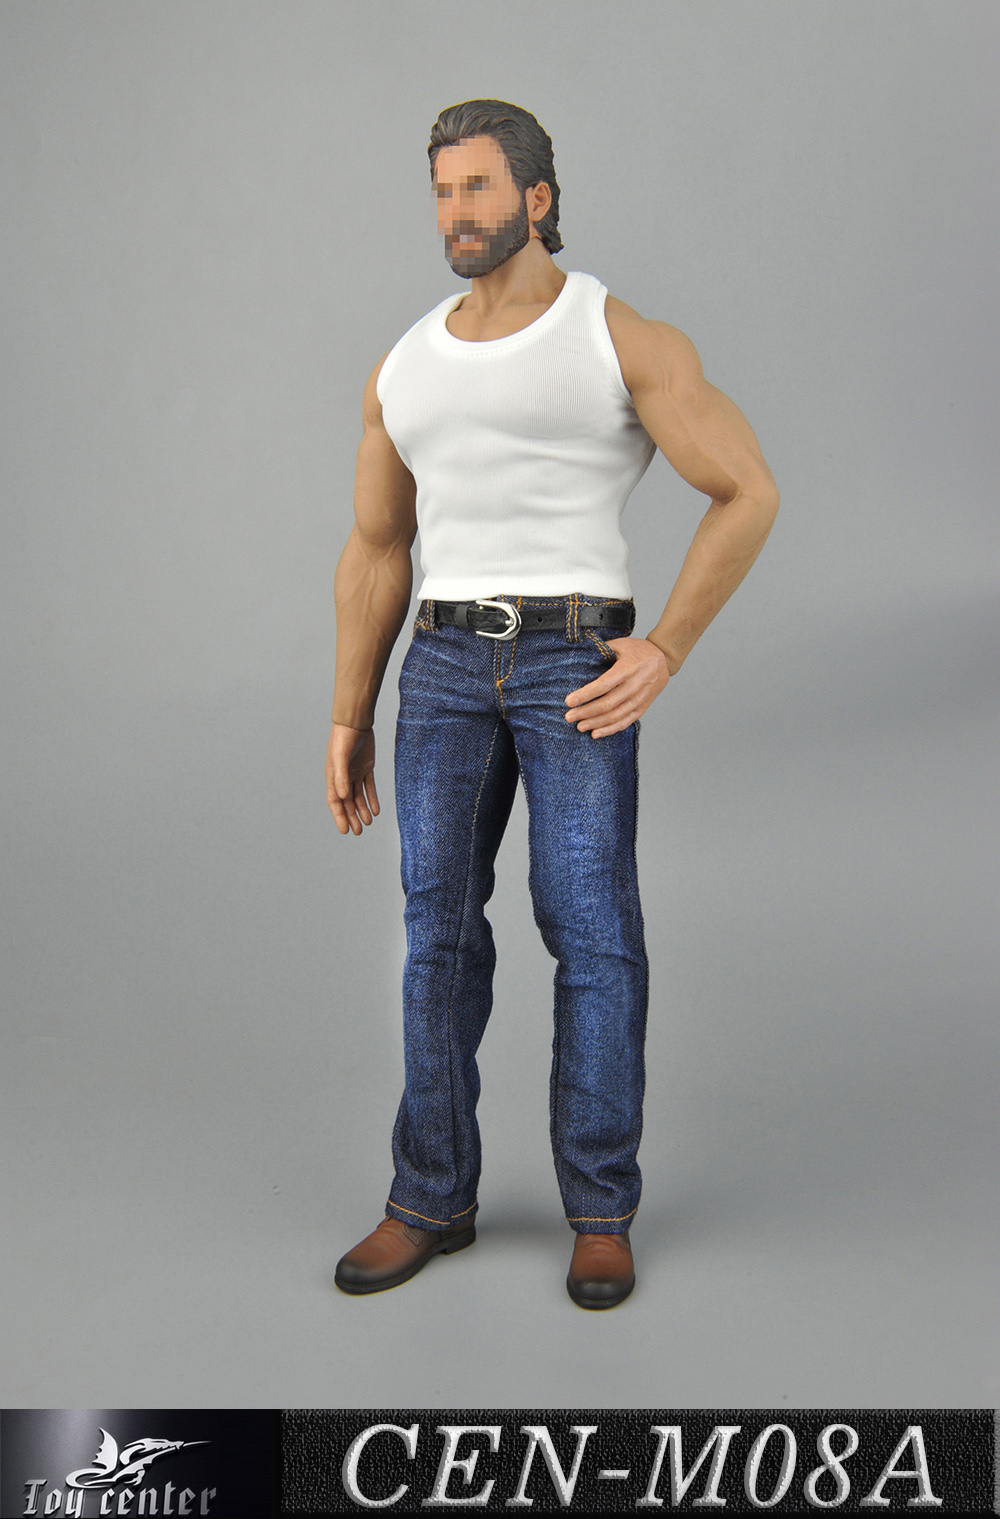 NEW PRODUCT: Toy Center: 1/6 Sports Vest Jeans Set - Three Colors A/B/C 1899